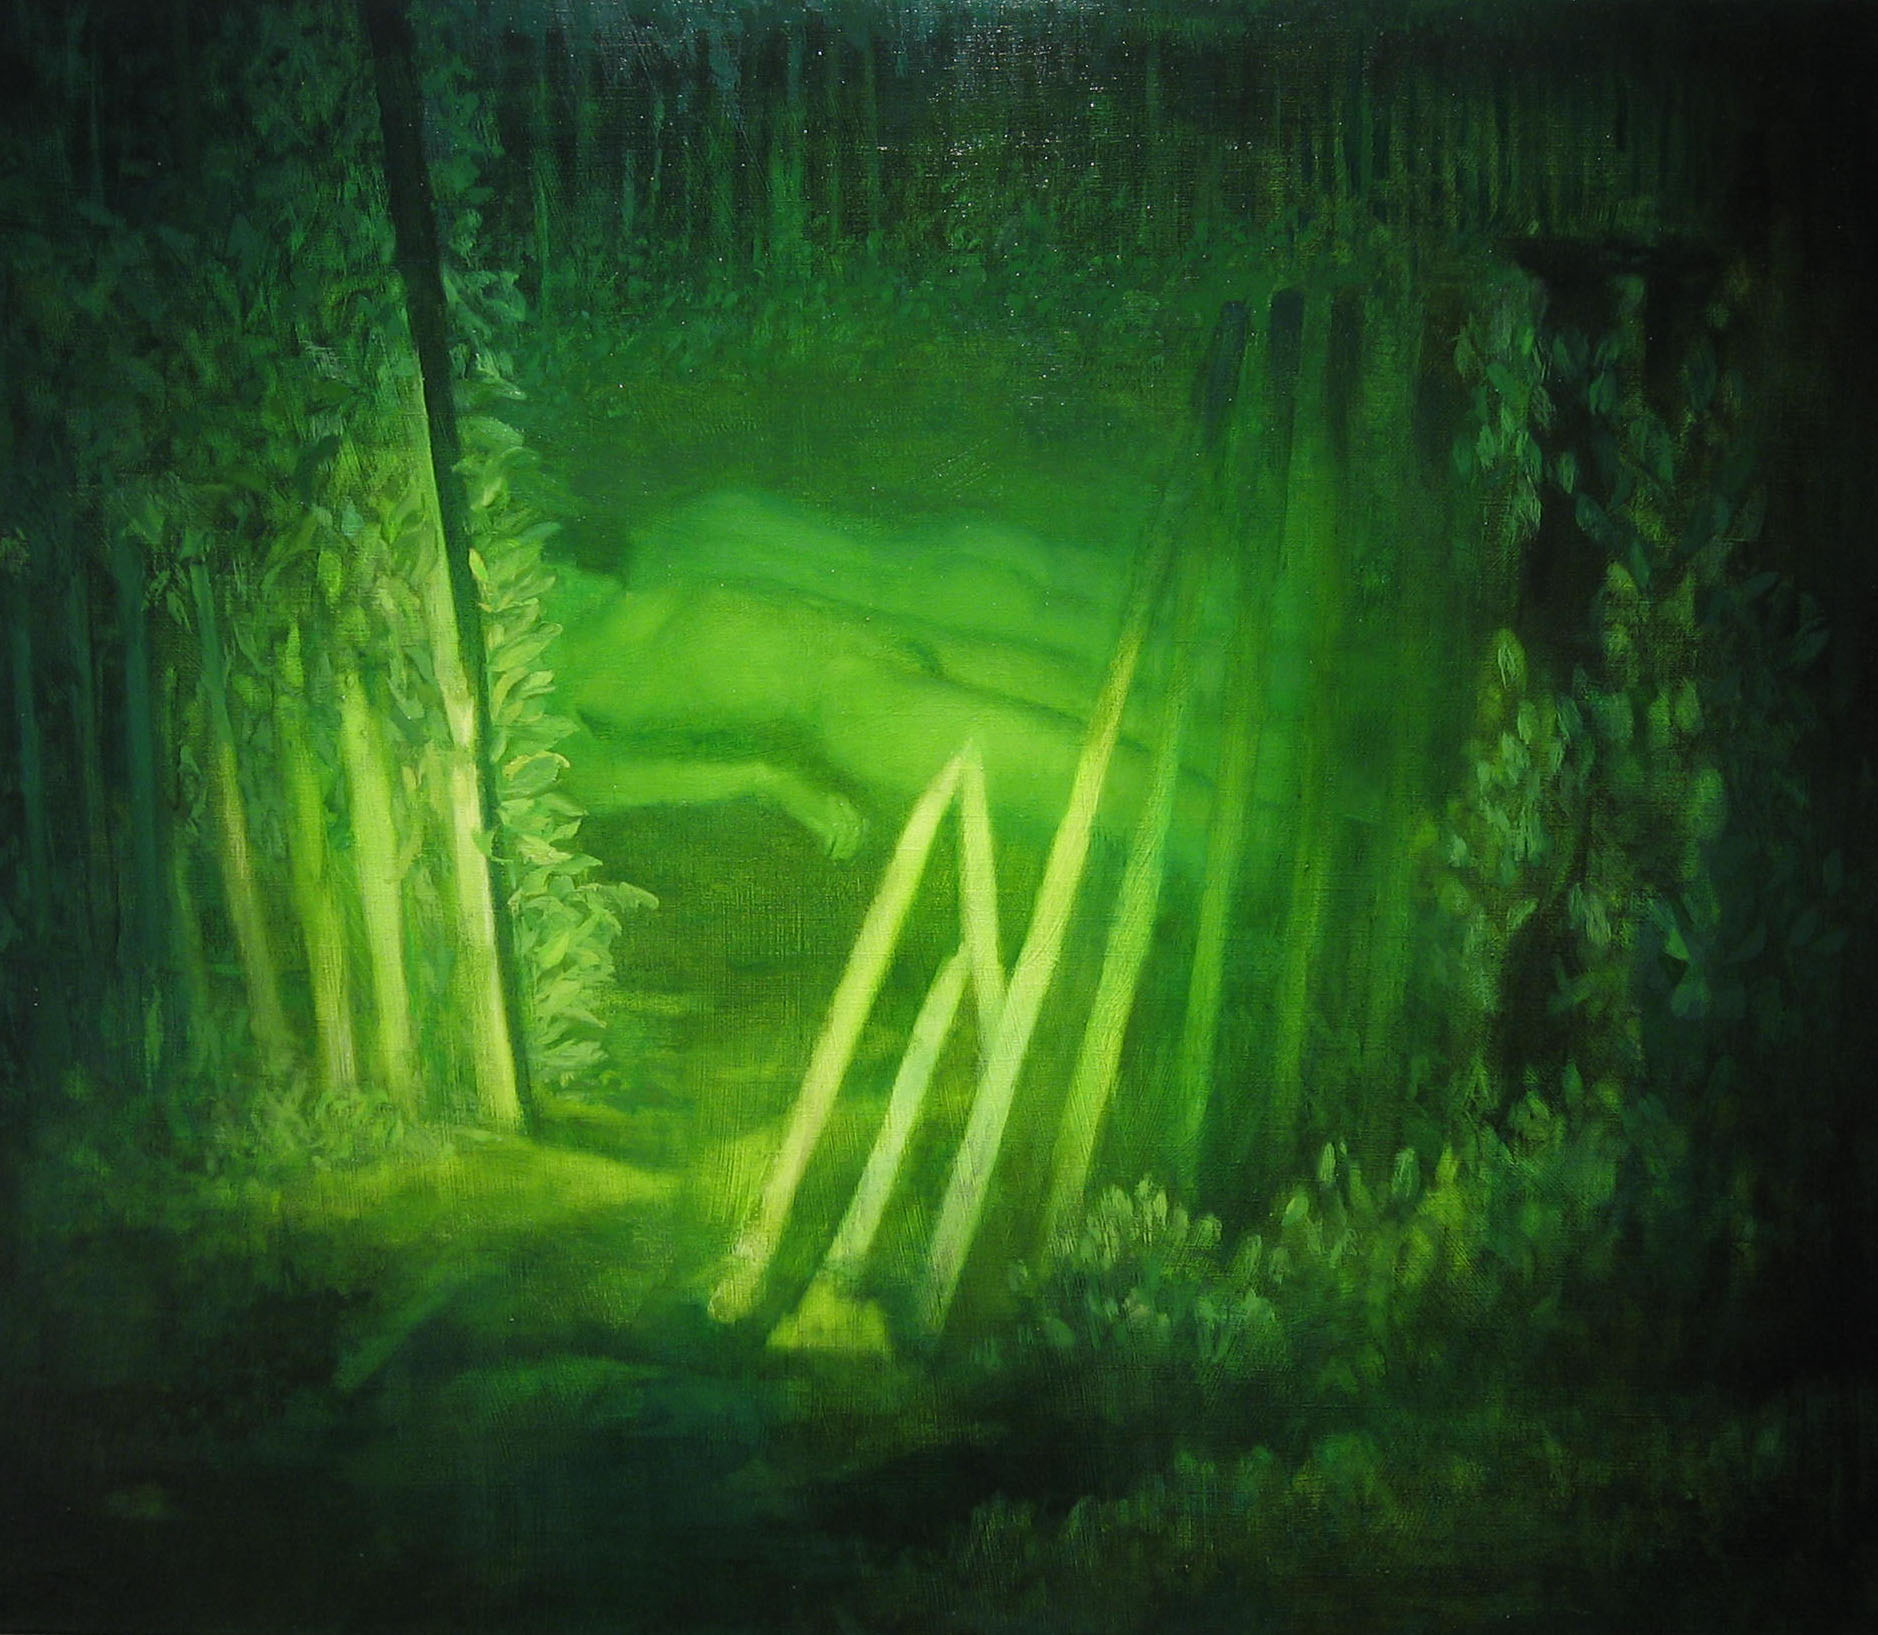 Bryan LeBoeuf   Night Vision, 2004  oil on linen  42 x 36 inches